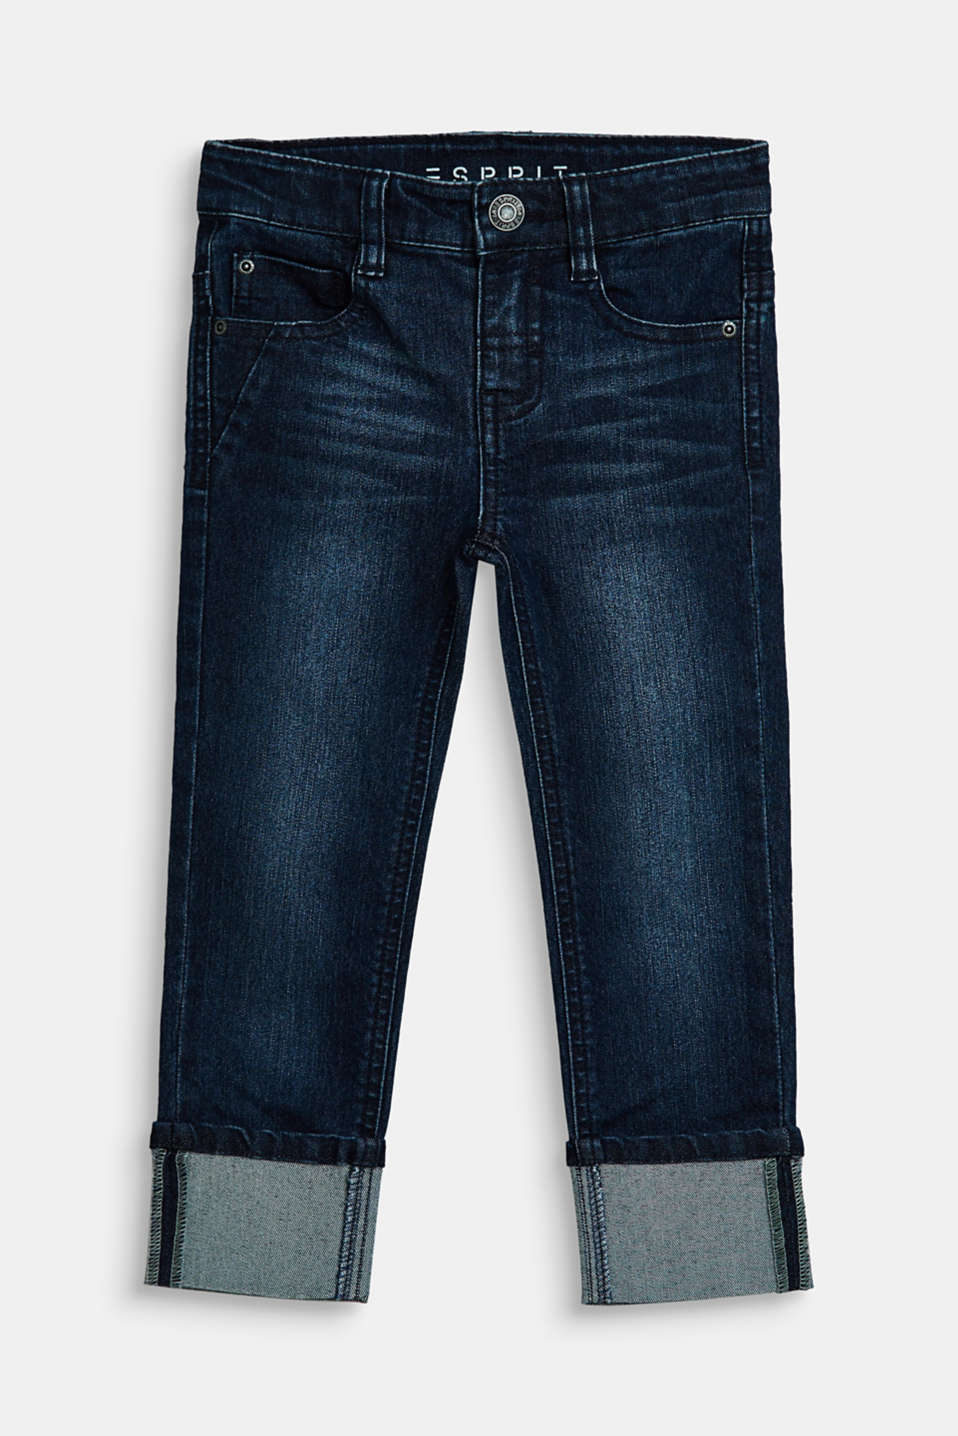 Esprit - Stretch-Jeans mit fixierten Turn-up-Säumen